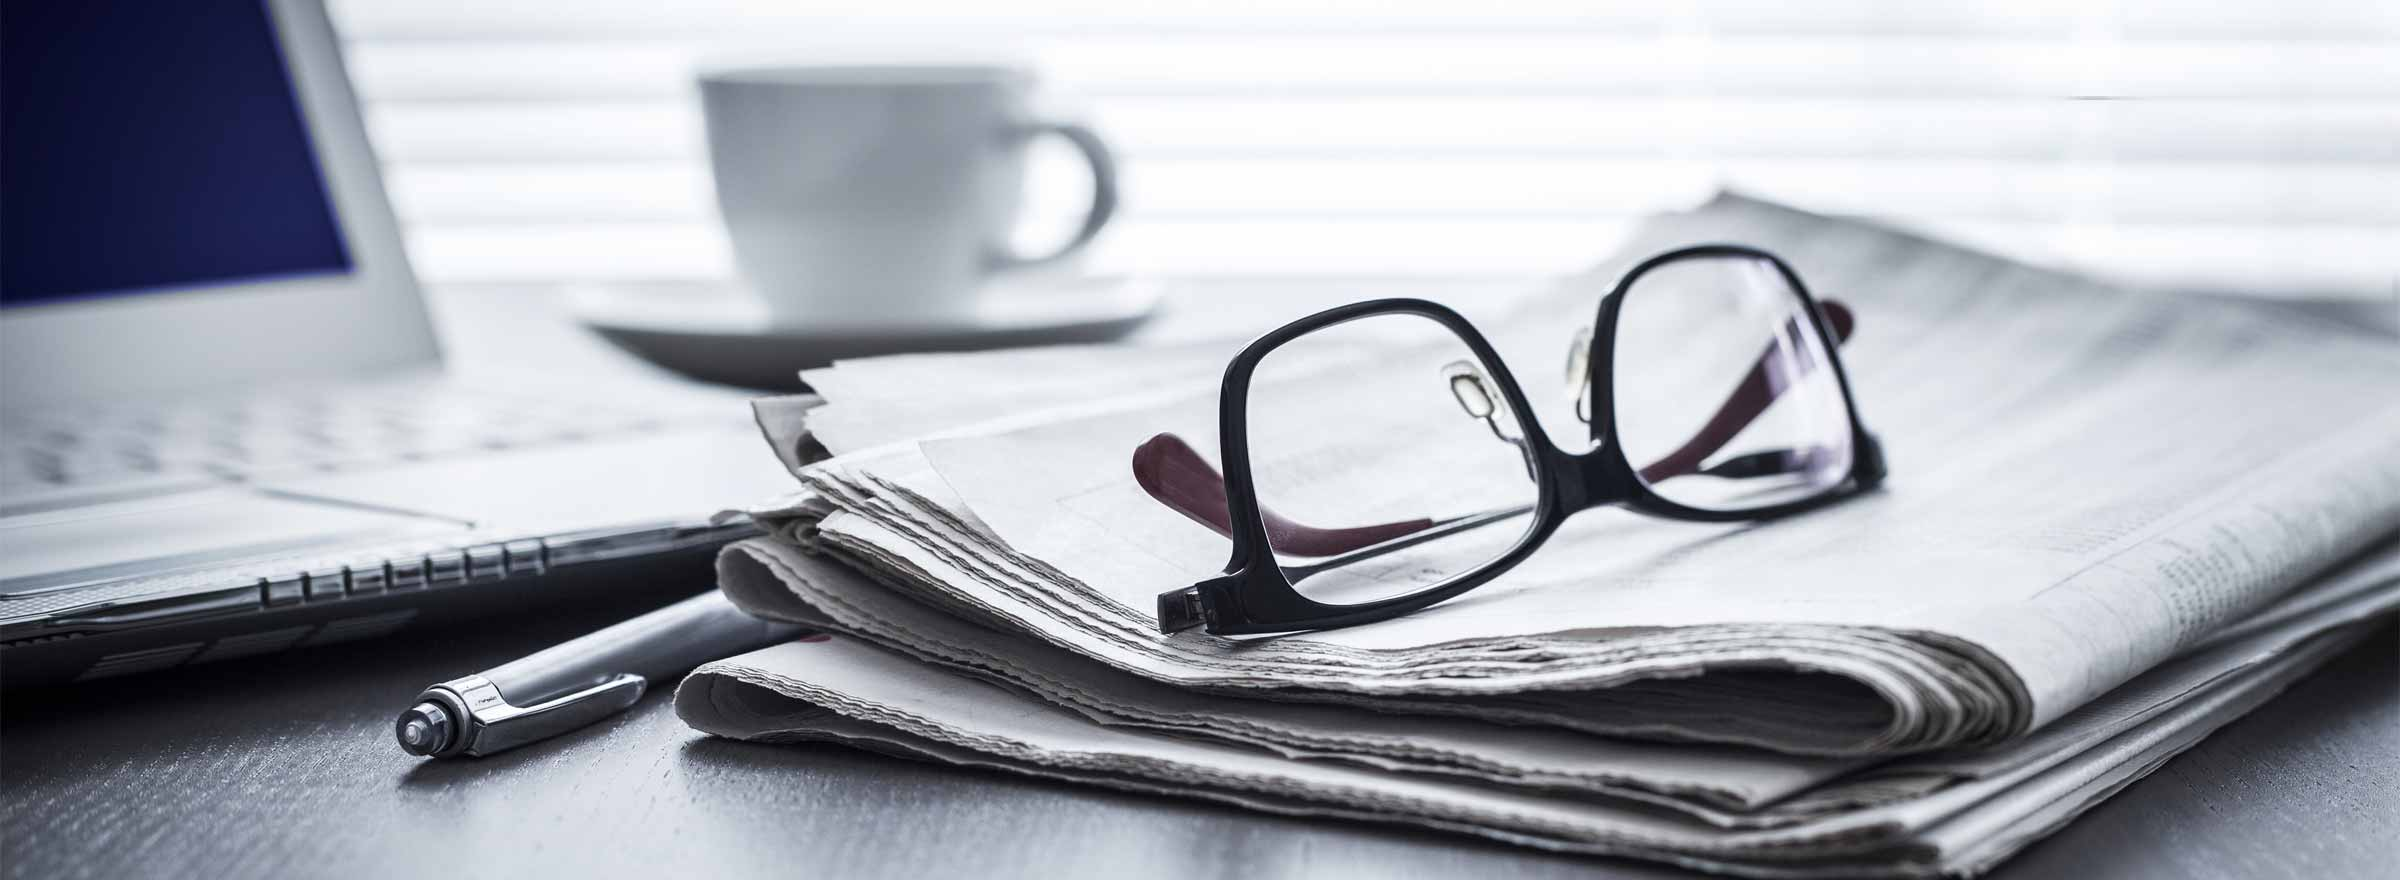 eyeglasses resting on a newspaper in front of a laptop